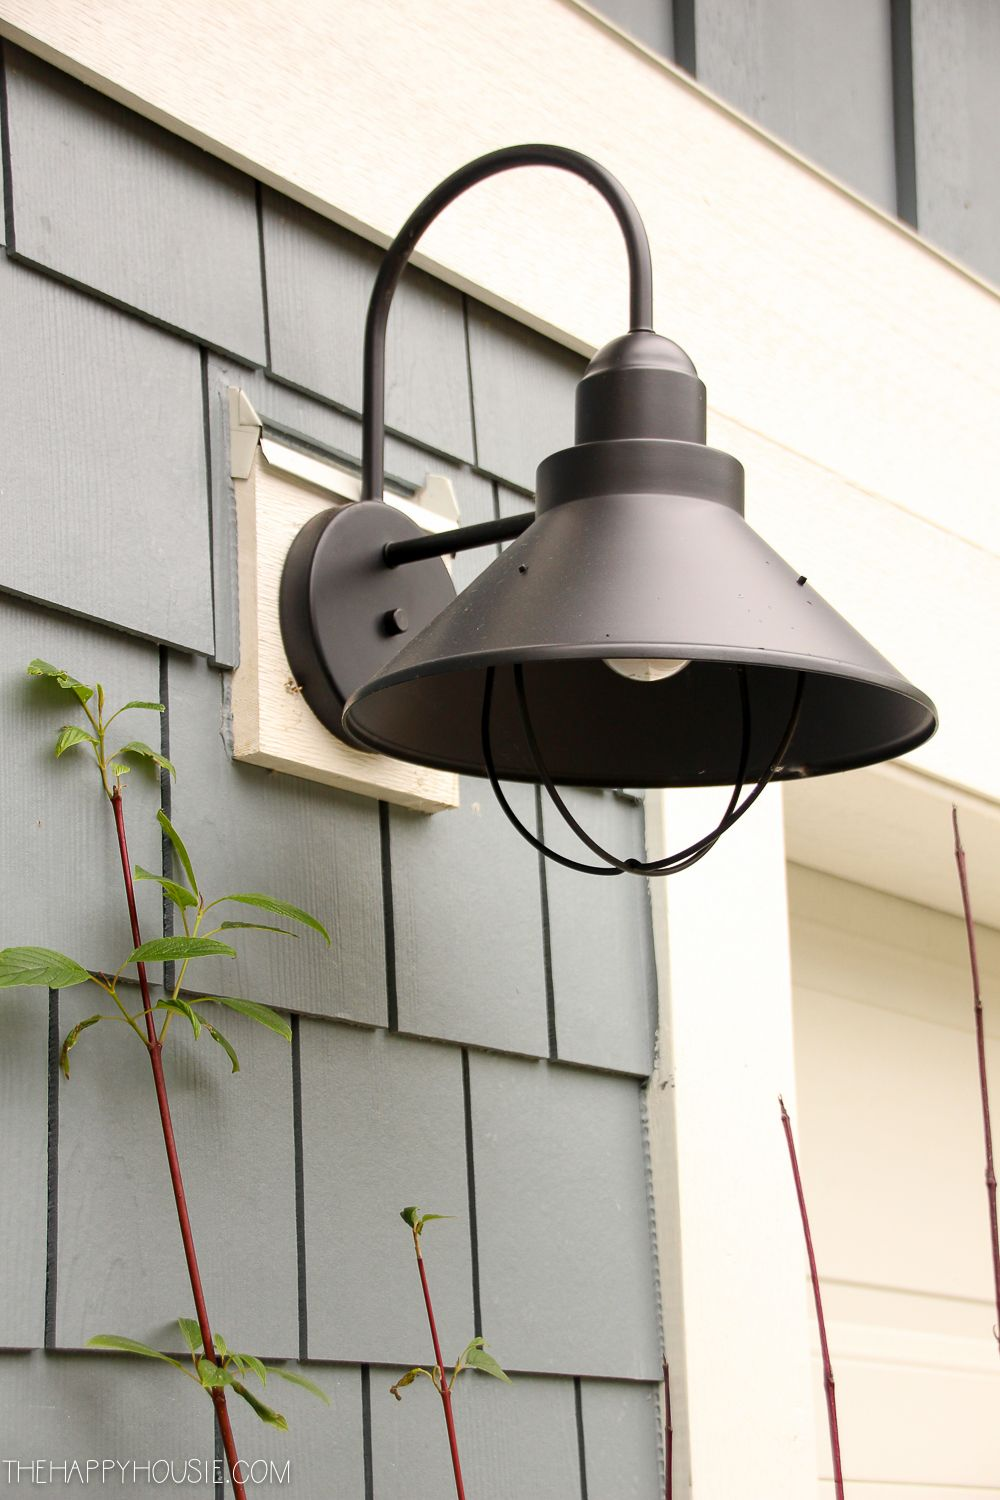 Today I M Sharing Our New Affordable Coastal Outdoor Lighting Update With Beautiful O Exterior Light Fixtures Outdoor Light Fixtures Farmhouse Outdoor Lighting Coastal outdoor lighting fixtures